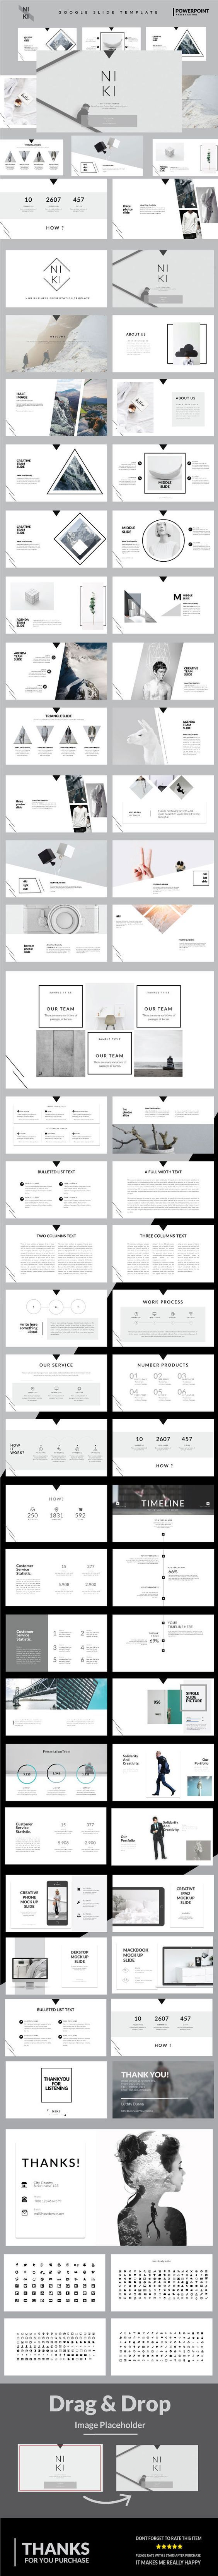 Niki - #Google Slide Template - Google Slides #Presentation #Templates Download here: https://graphicriver.net/item/niki-google-slide-template/19531702?ref=alena994